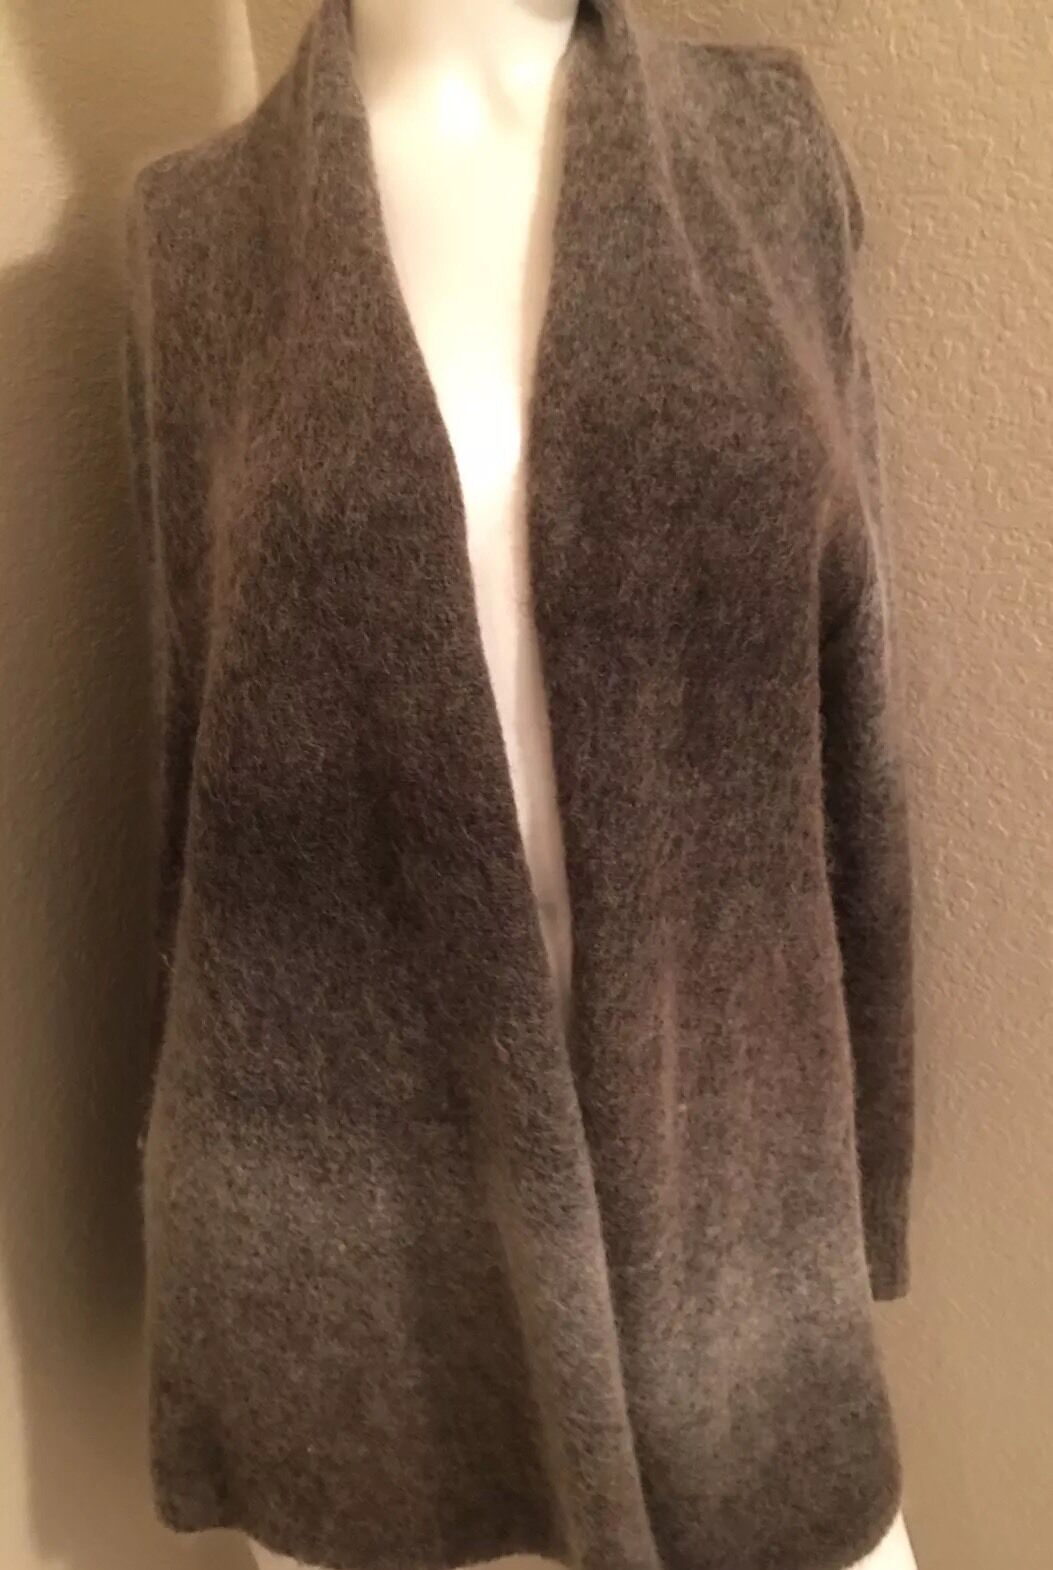 PREOWNED EILEEN FISHER OPEN FRONT SWEATER SUPER SOFT DRAPEY CARDIGAN LARGE BROWN